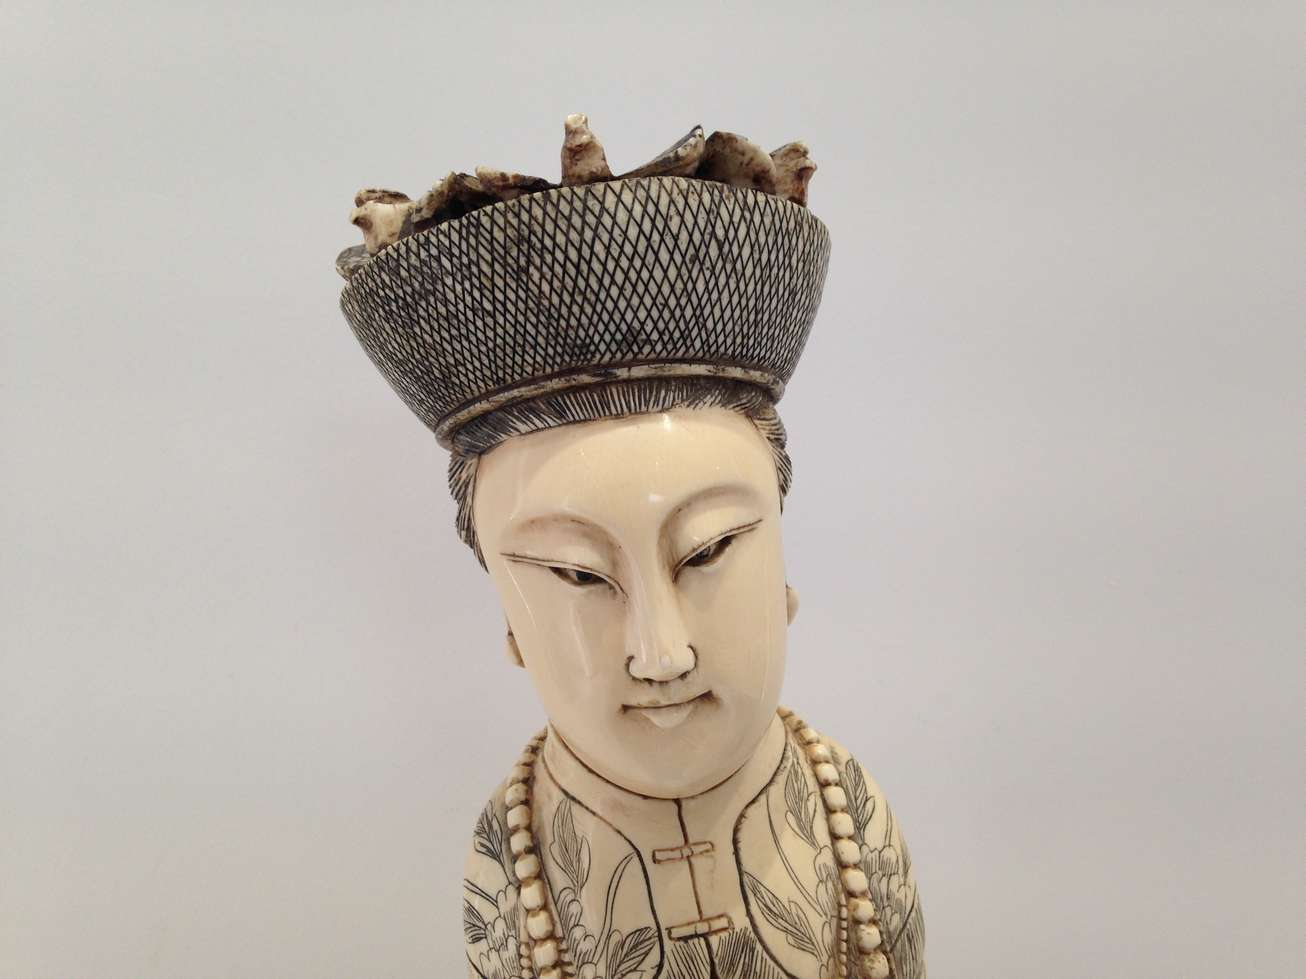 ivoire-sculpture-defense-chine-chapeau-resine-art-restaurarte.jpg